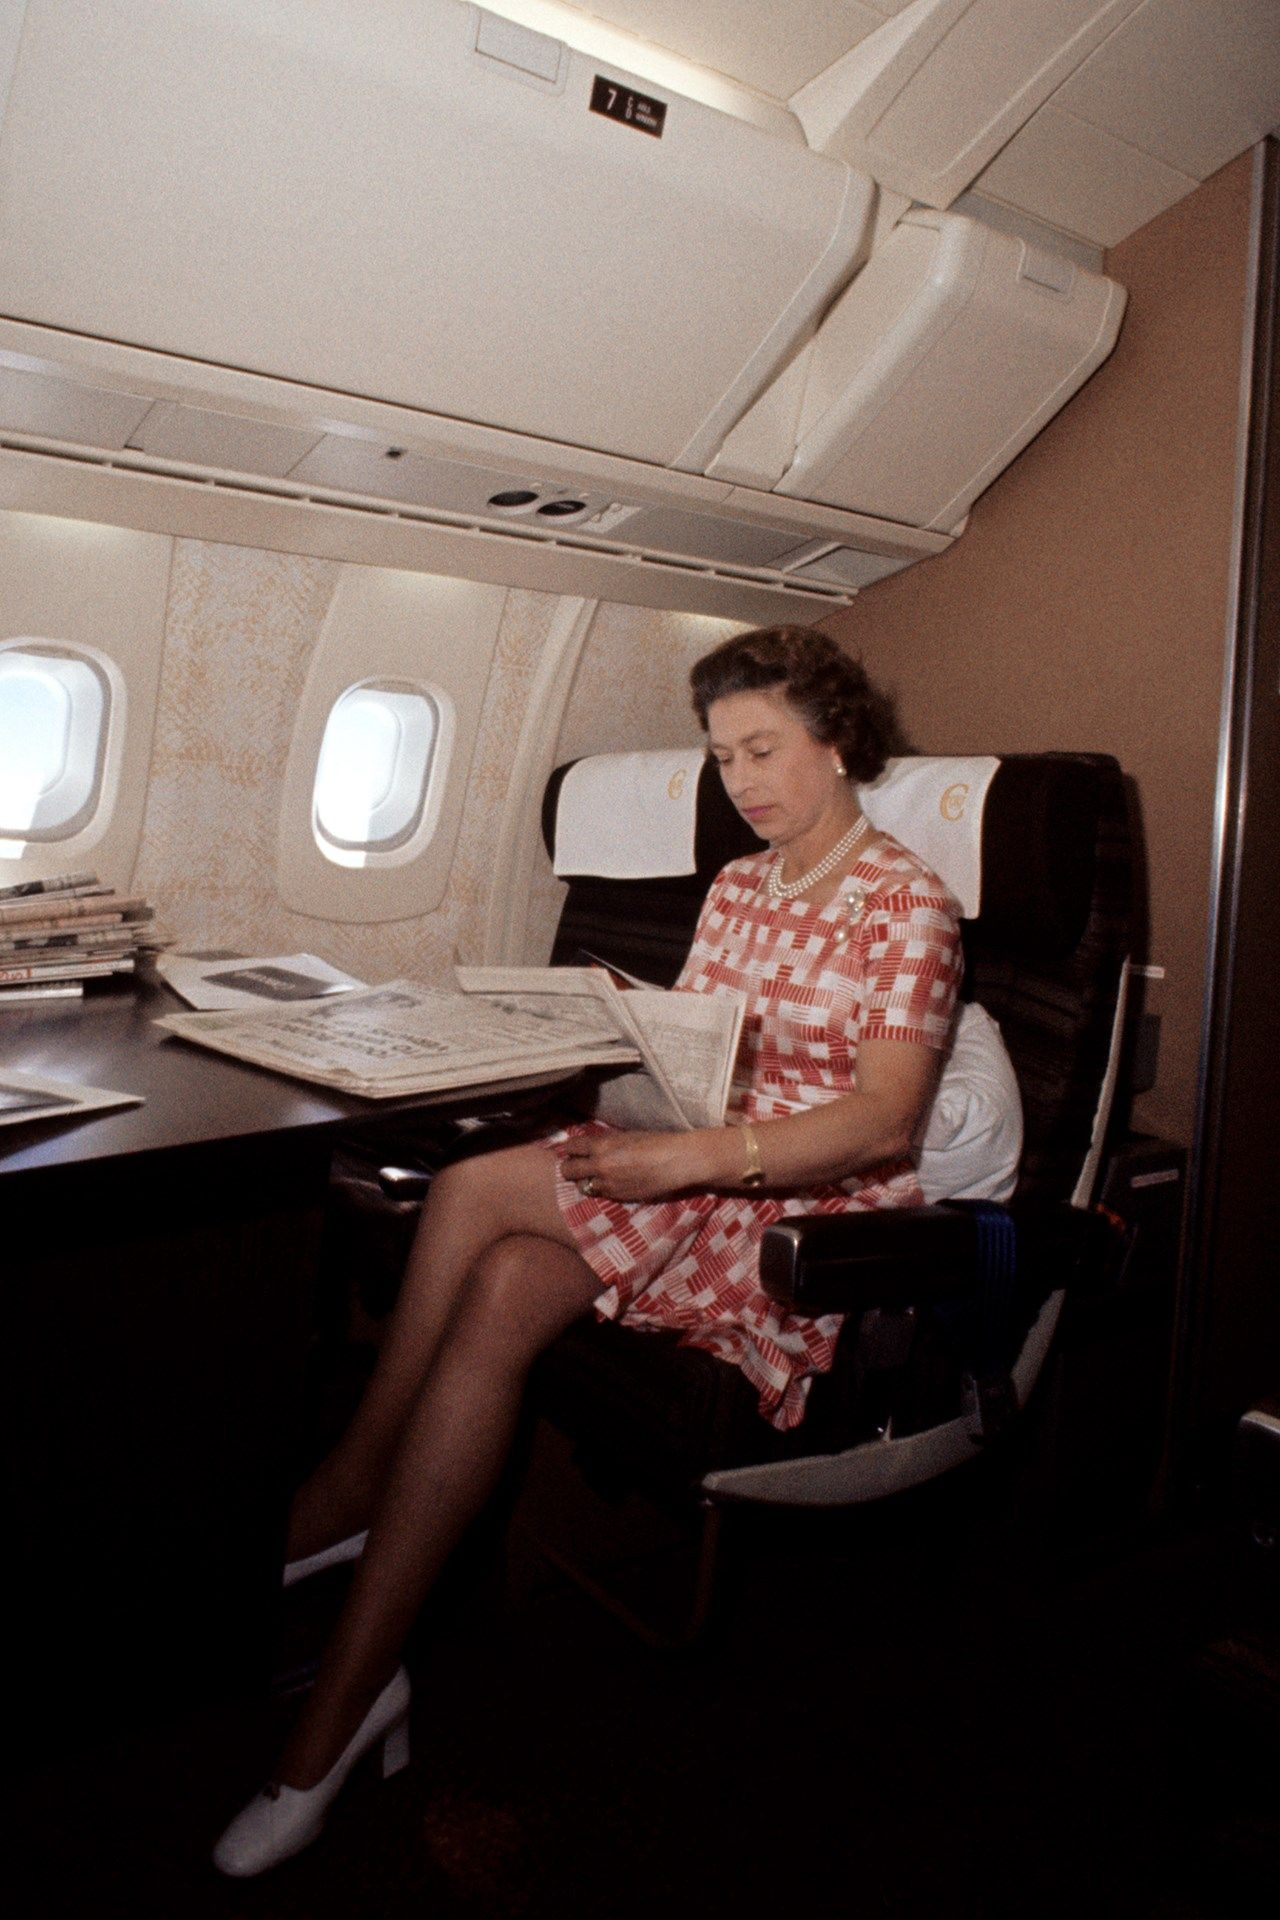 The Queen reading newspapers during her flight home from Bridgetown, Barbados, on Concorde after her Silver Jubilee tour of Canada and the West Indies, November 1977.